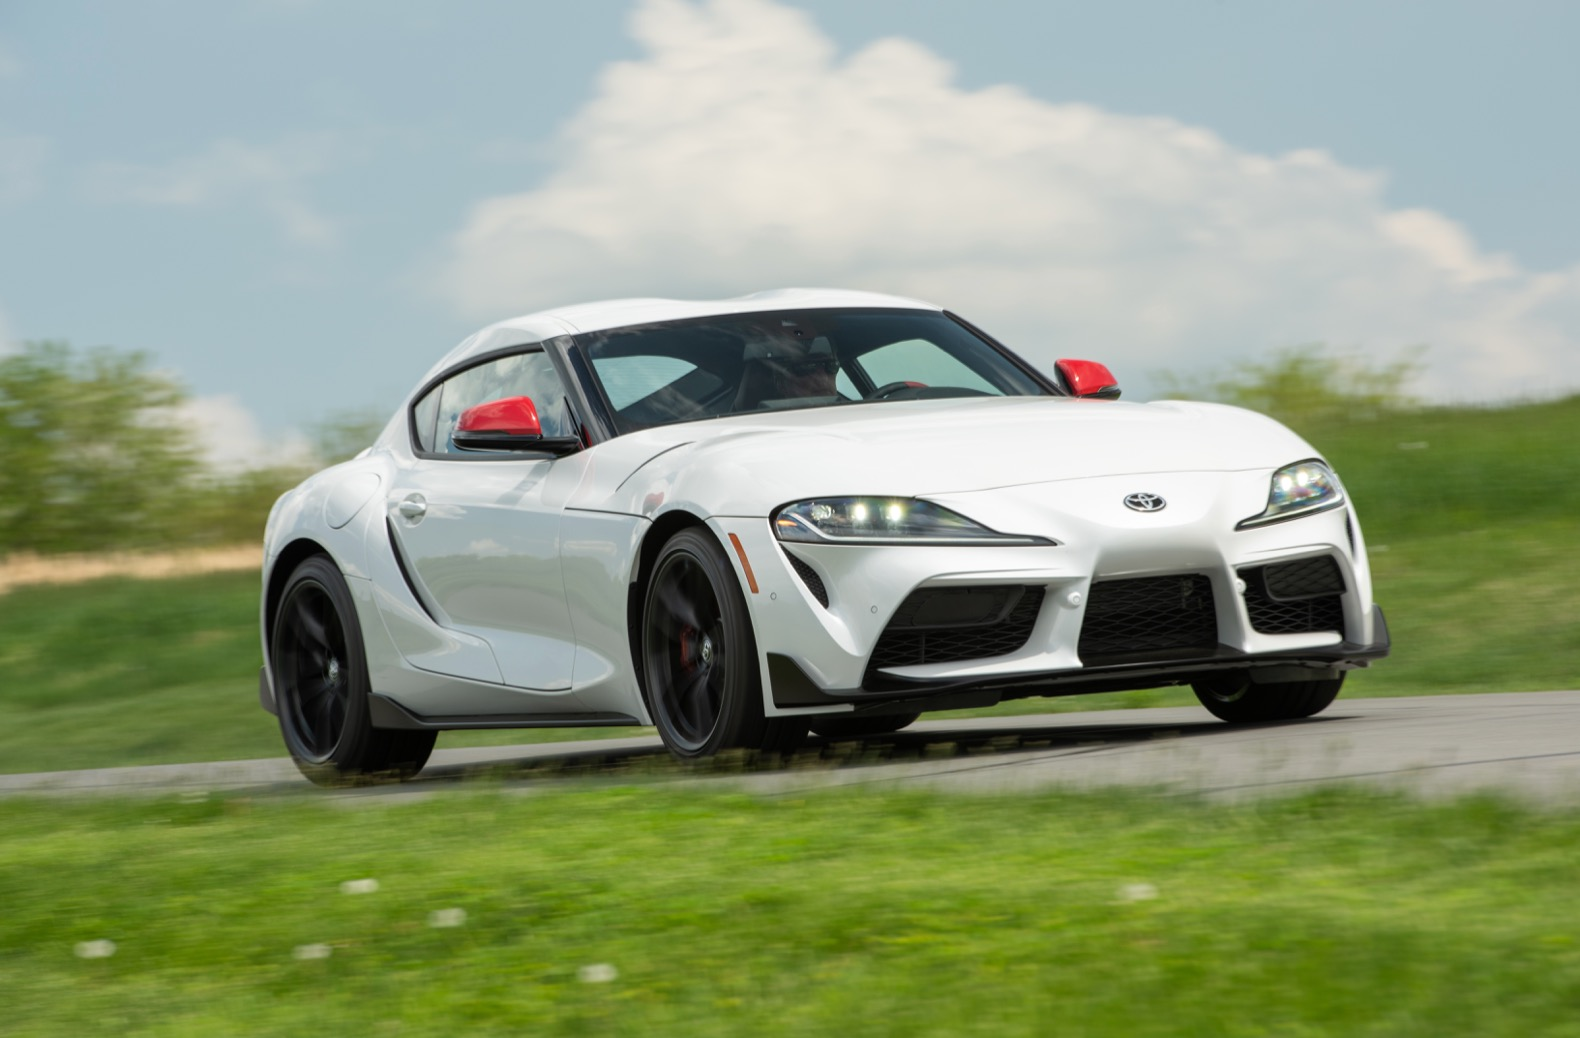 2020 Toyota Gr Supra Review Bringing The Excitement Back